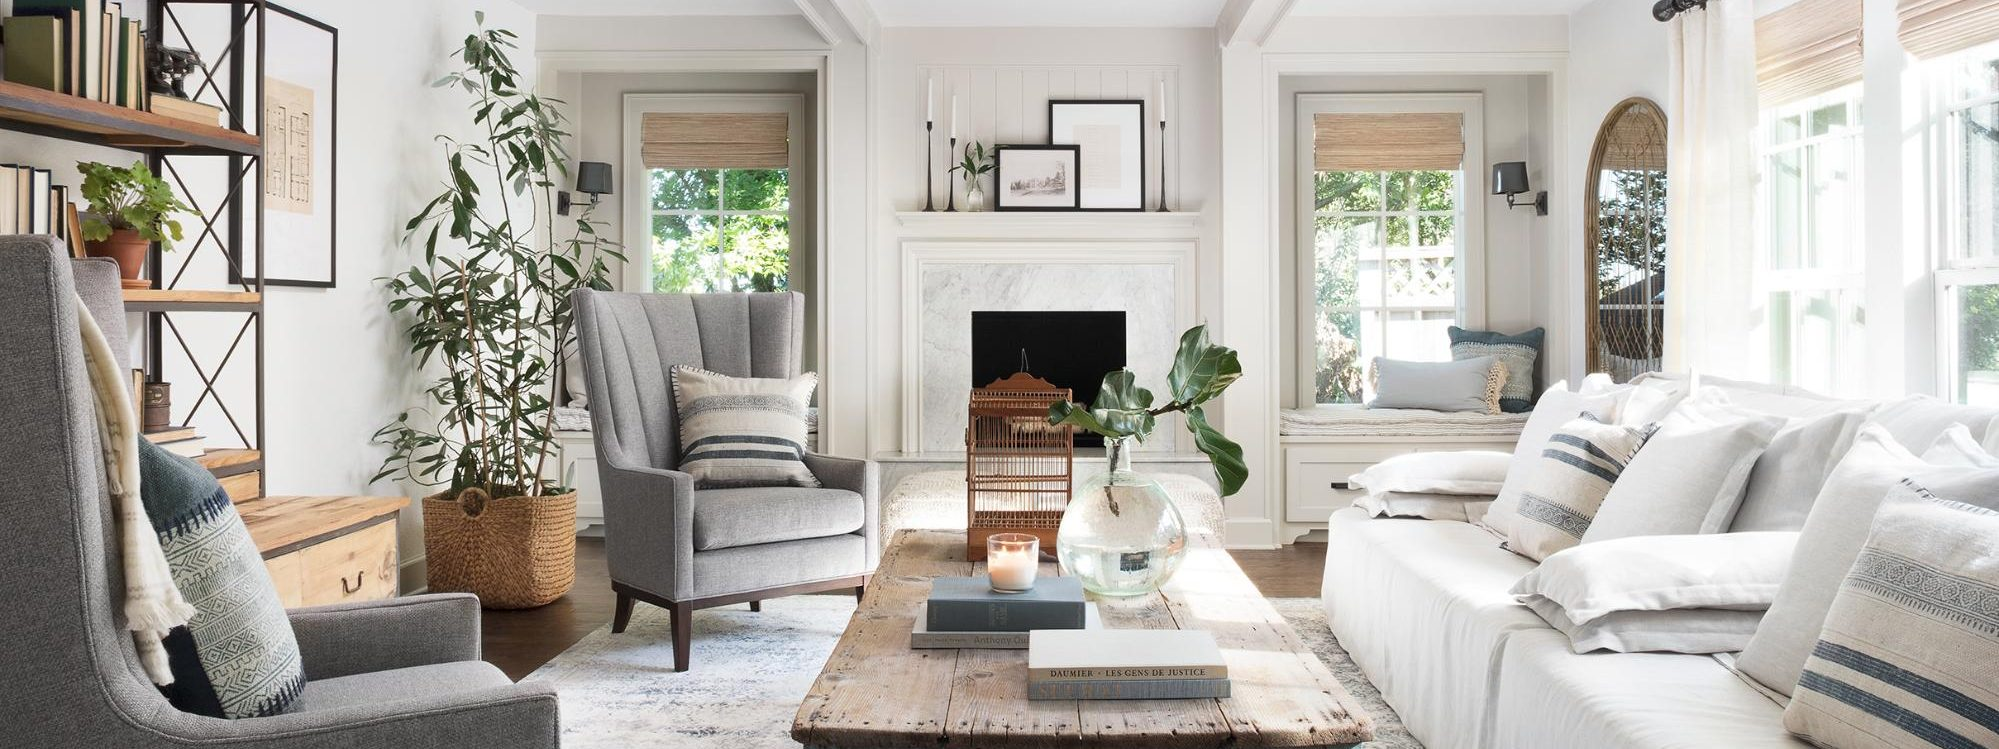 Get This Look Fixer Upper Mountain House Living Room